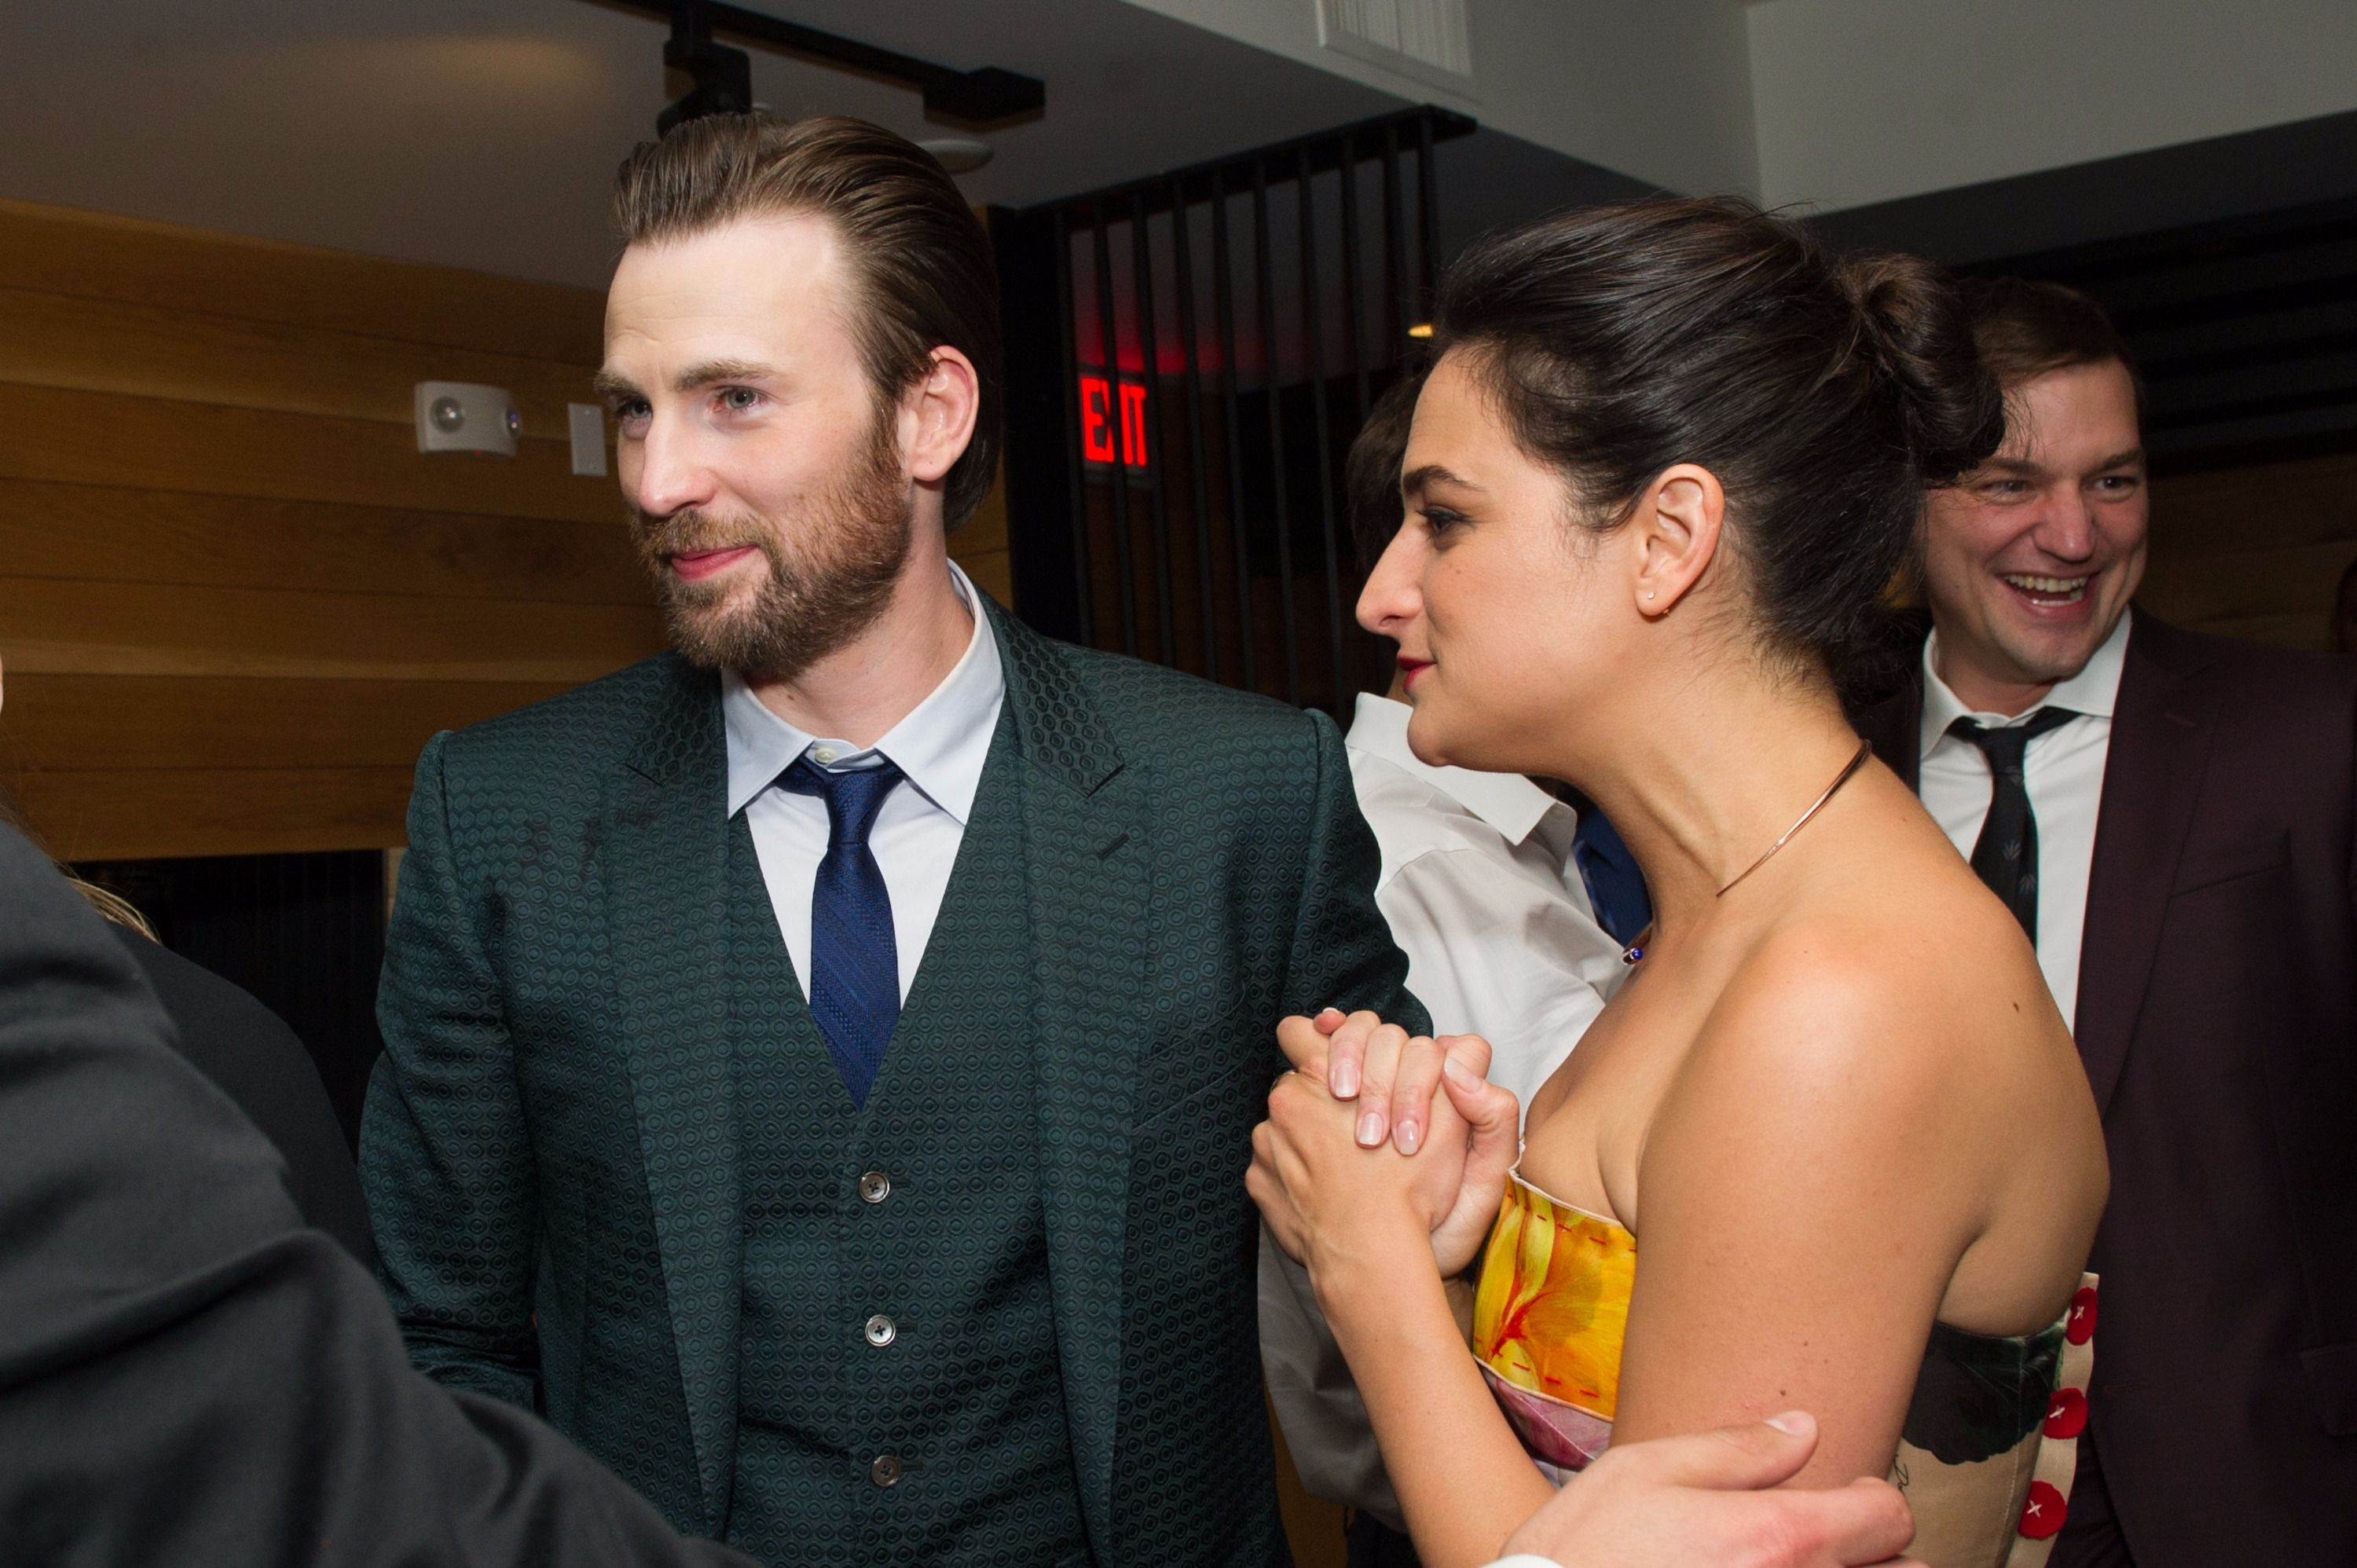 Is chris evans dating someone new